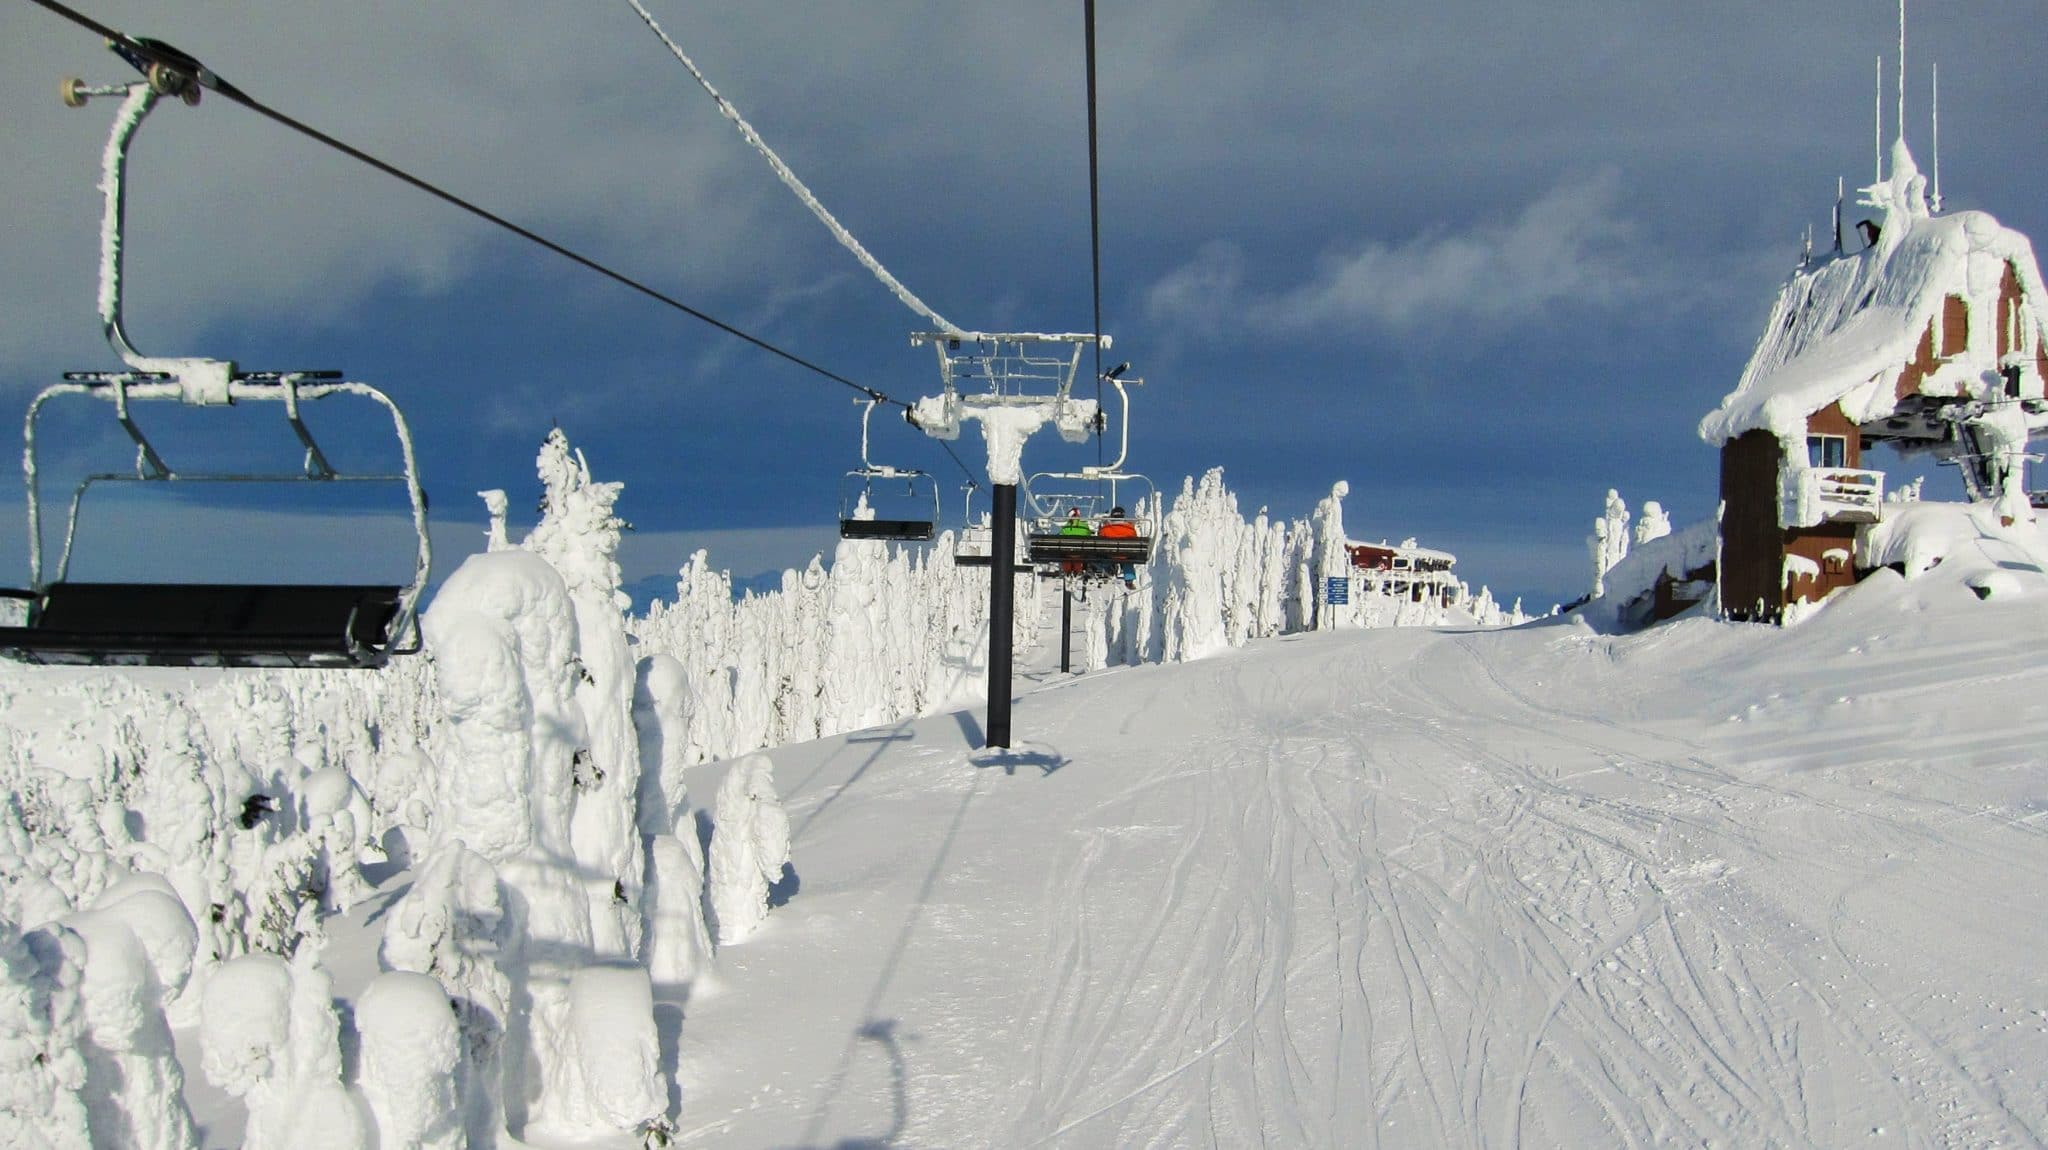 Heading Up The Chair At Whitefish, Snowghosts On The Left